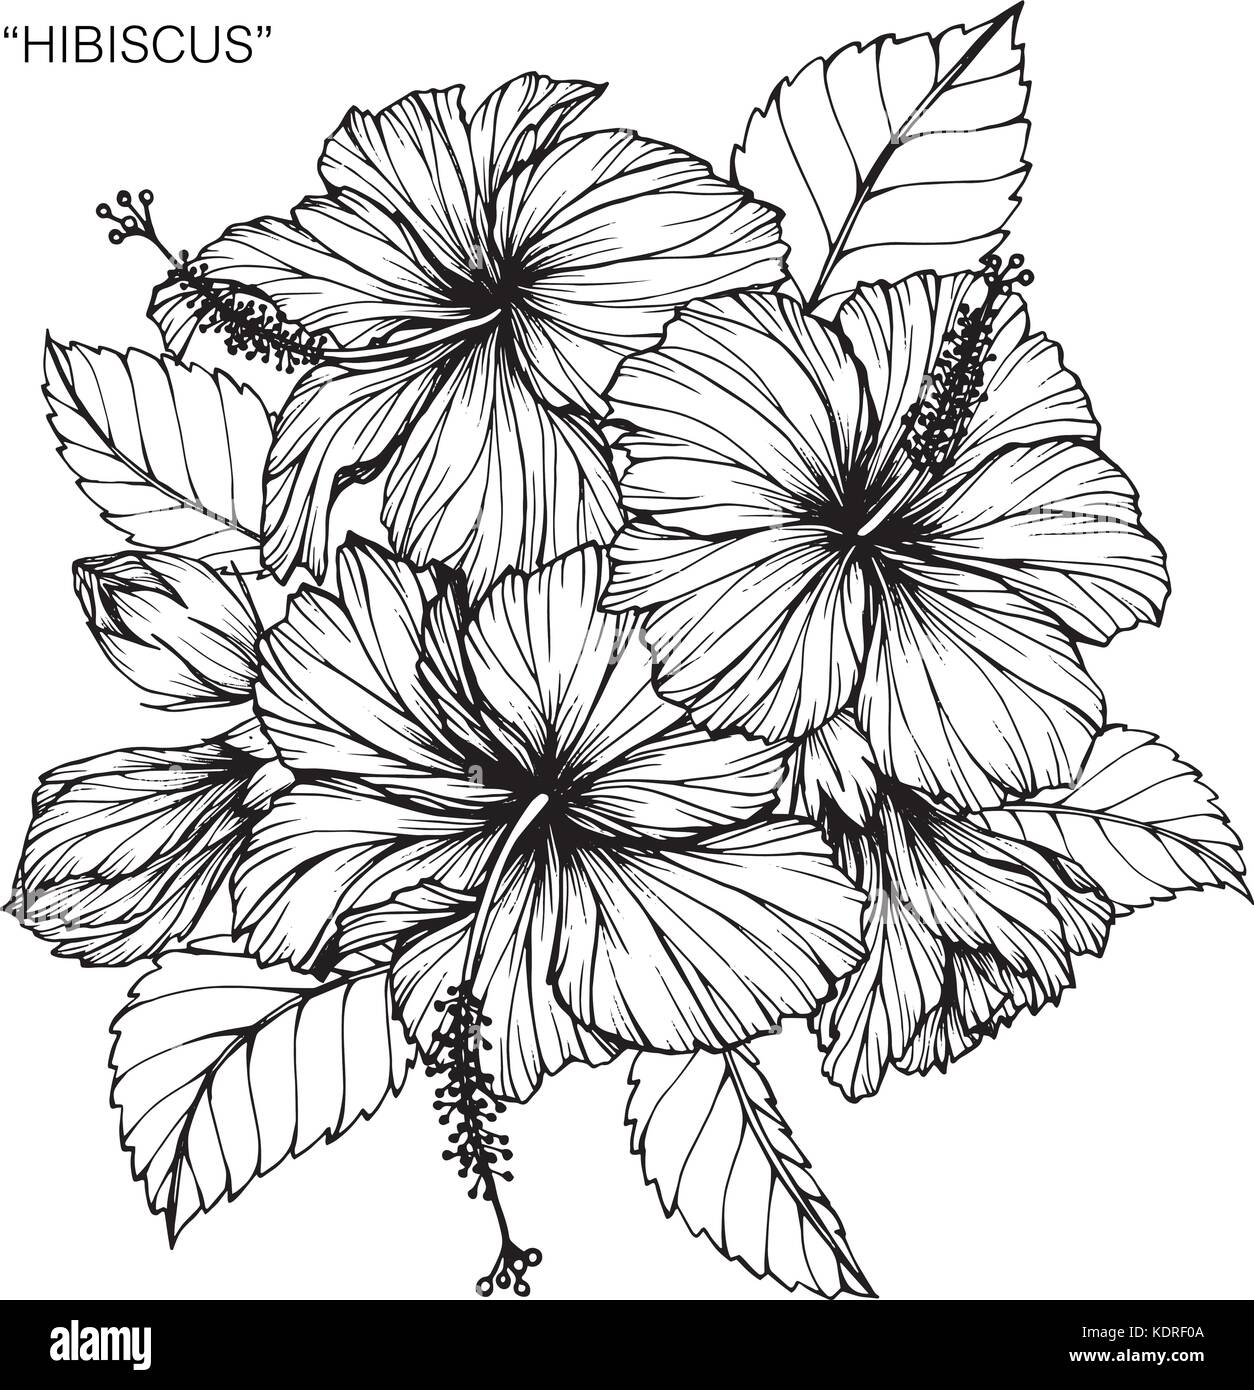 Hibiscus flower hand stock photos hibiscus flower hand stock hibiscus flower drawing illustration black and white with line art stock image izmirmasajfo